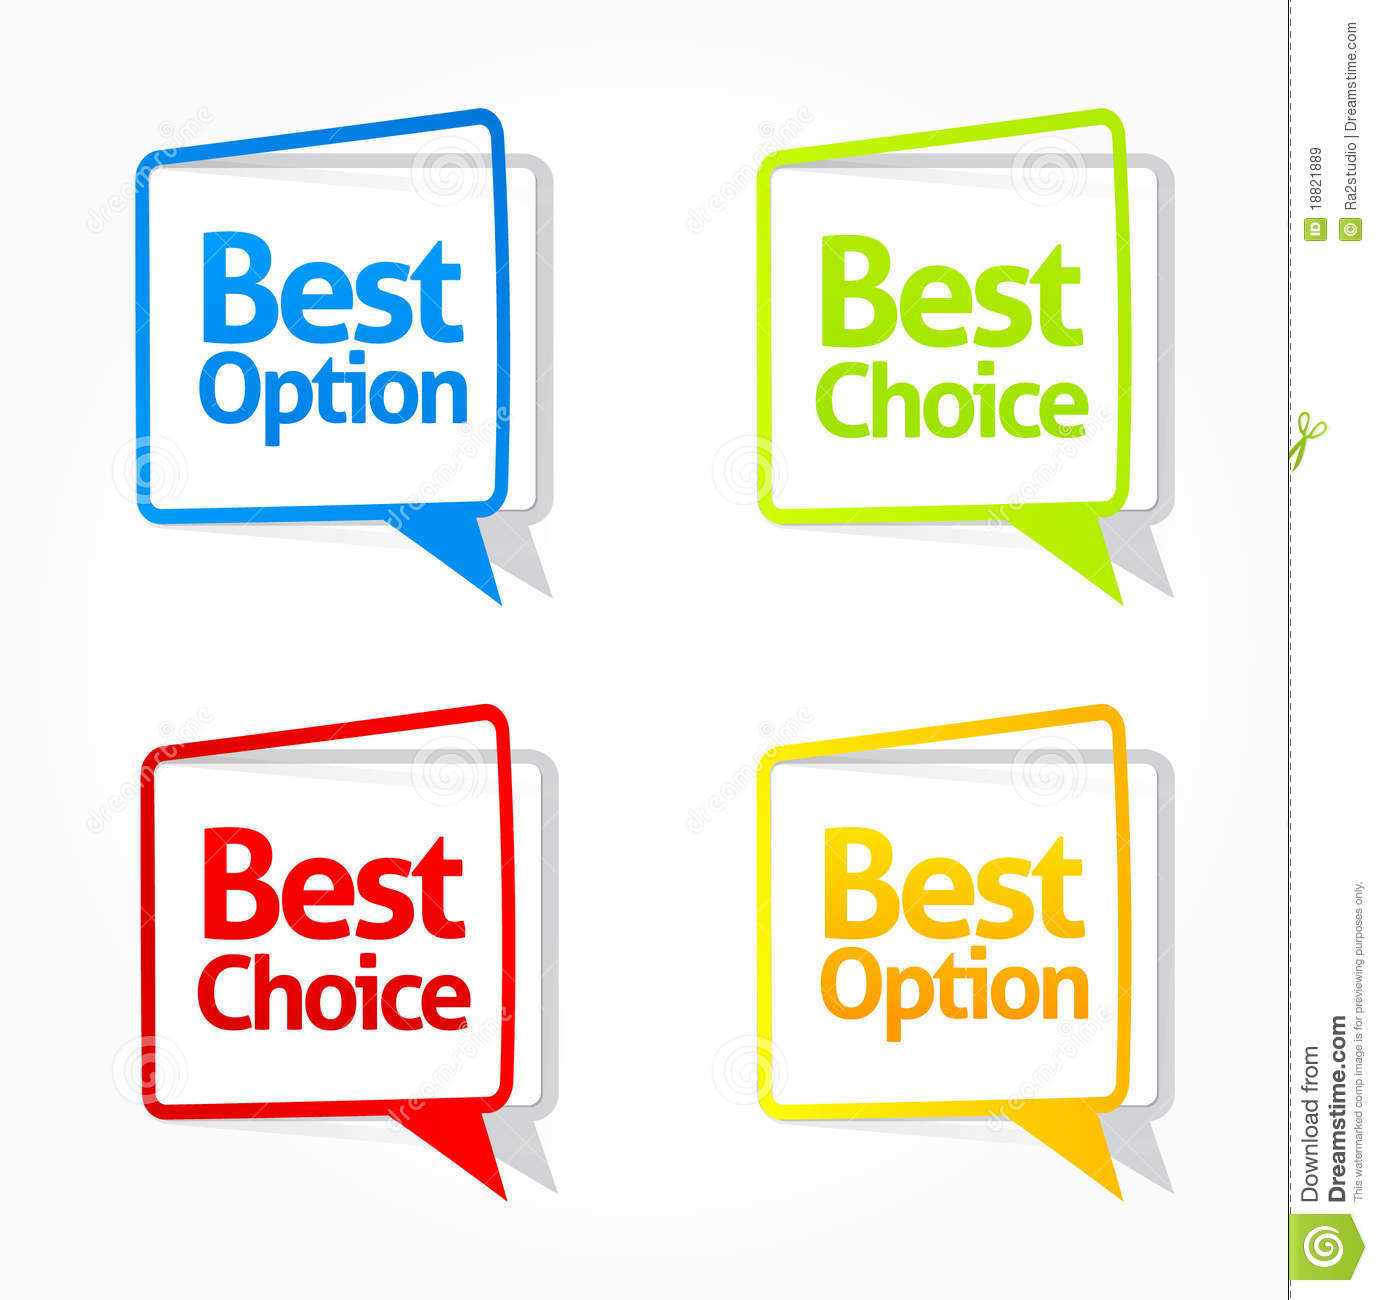 What is the best option